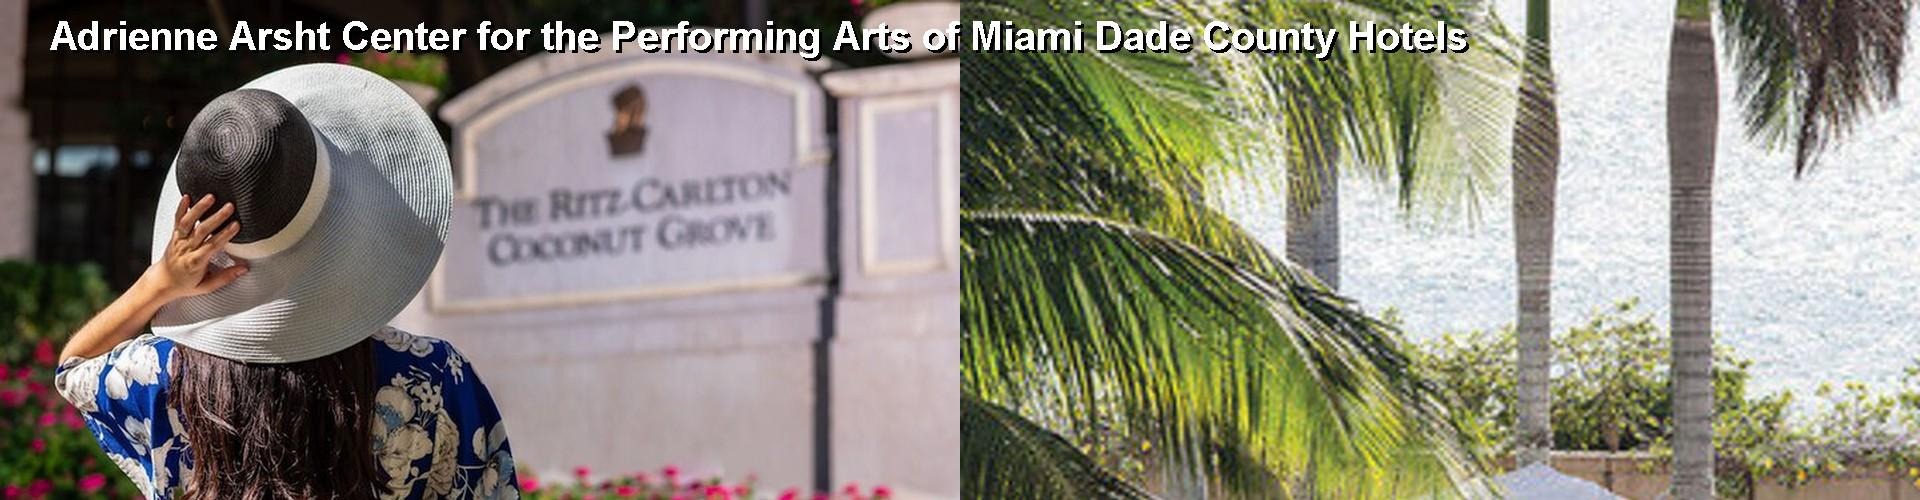 5 Best Hotels near Adrienne Arsht Center for the Performing Arts of Miami Dade County